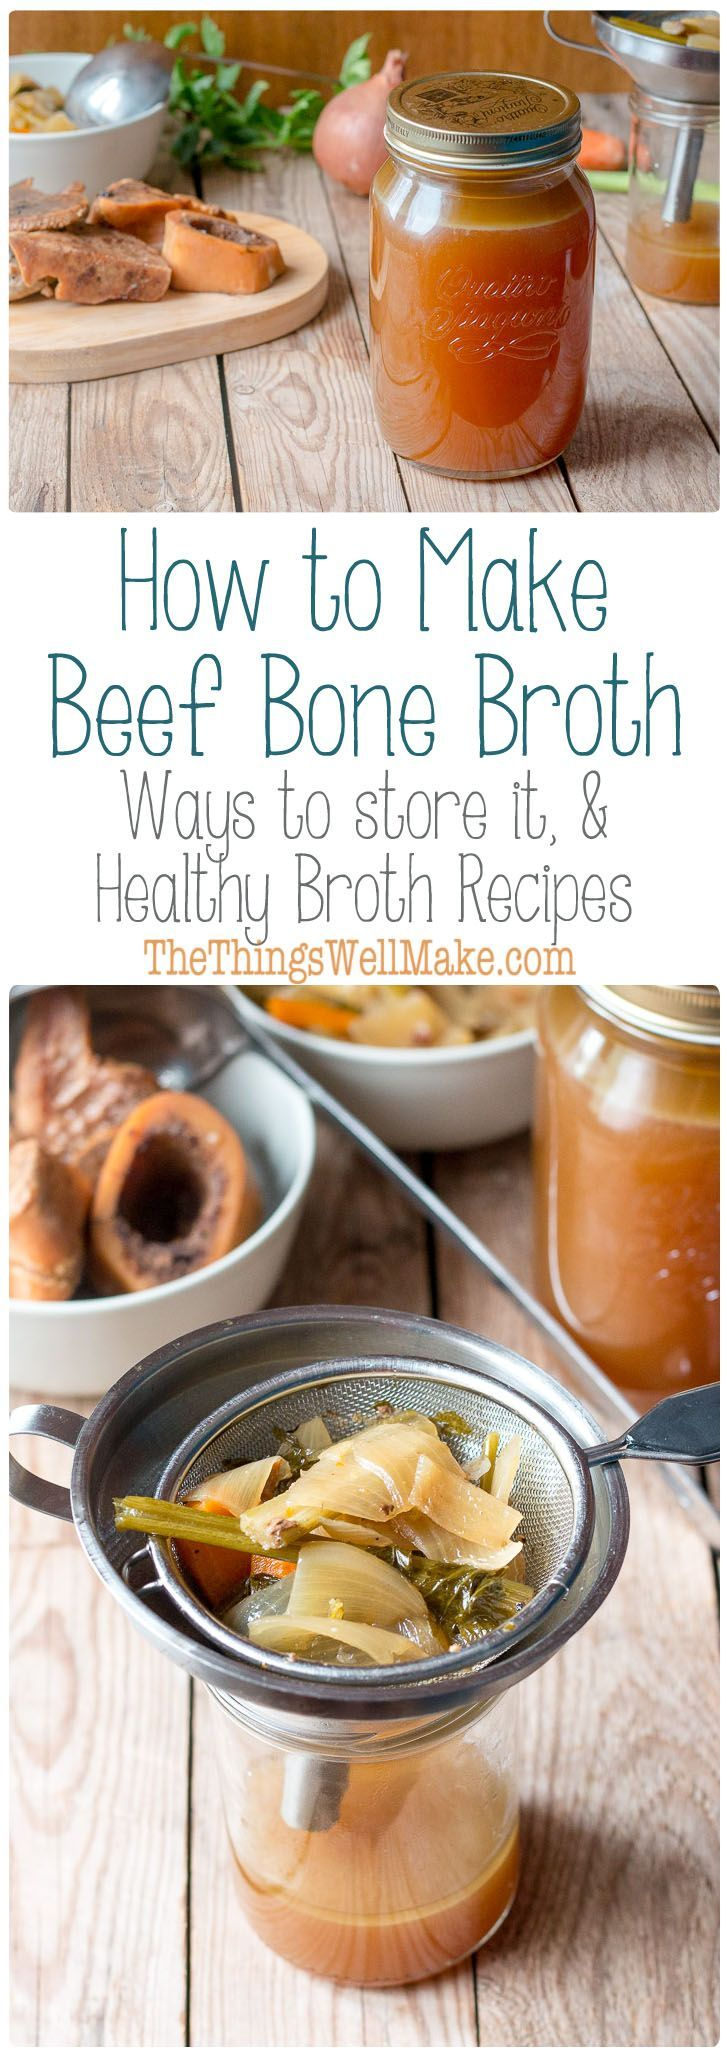 How to make beef bone broth, storage tips, & recipe ideas. Nourishing, paleo, healthy broth, beef stock.